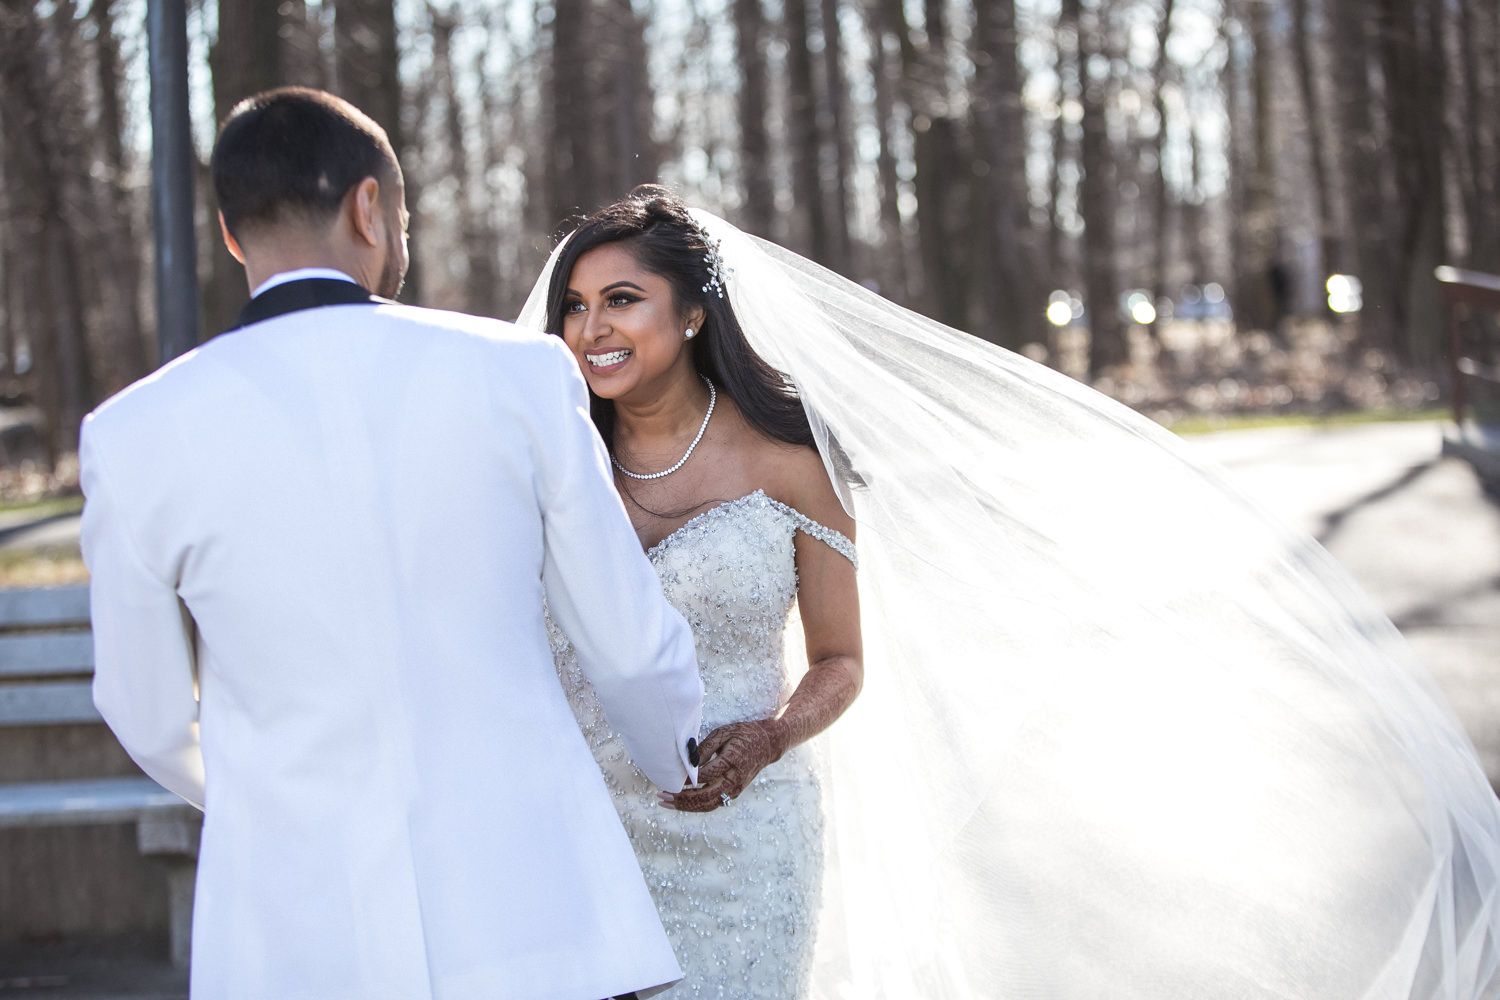 first-look-wedding-pictures.jpg